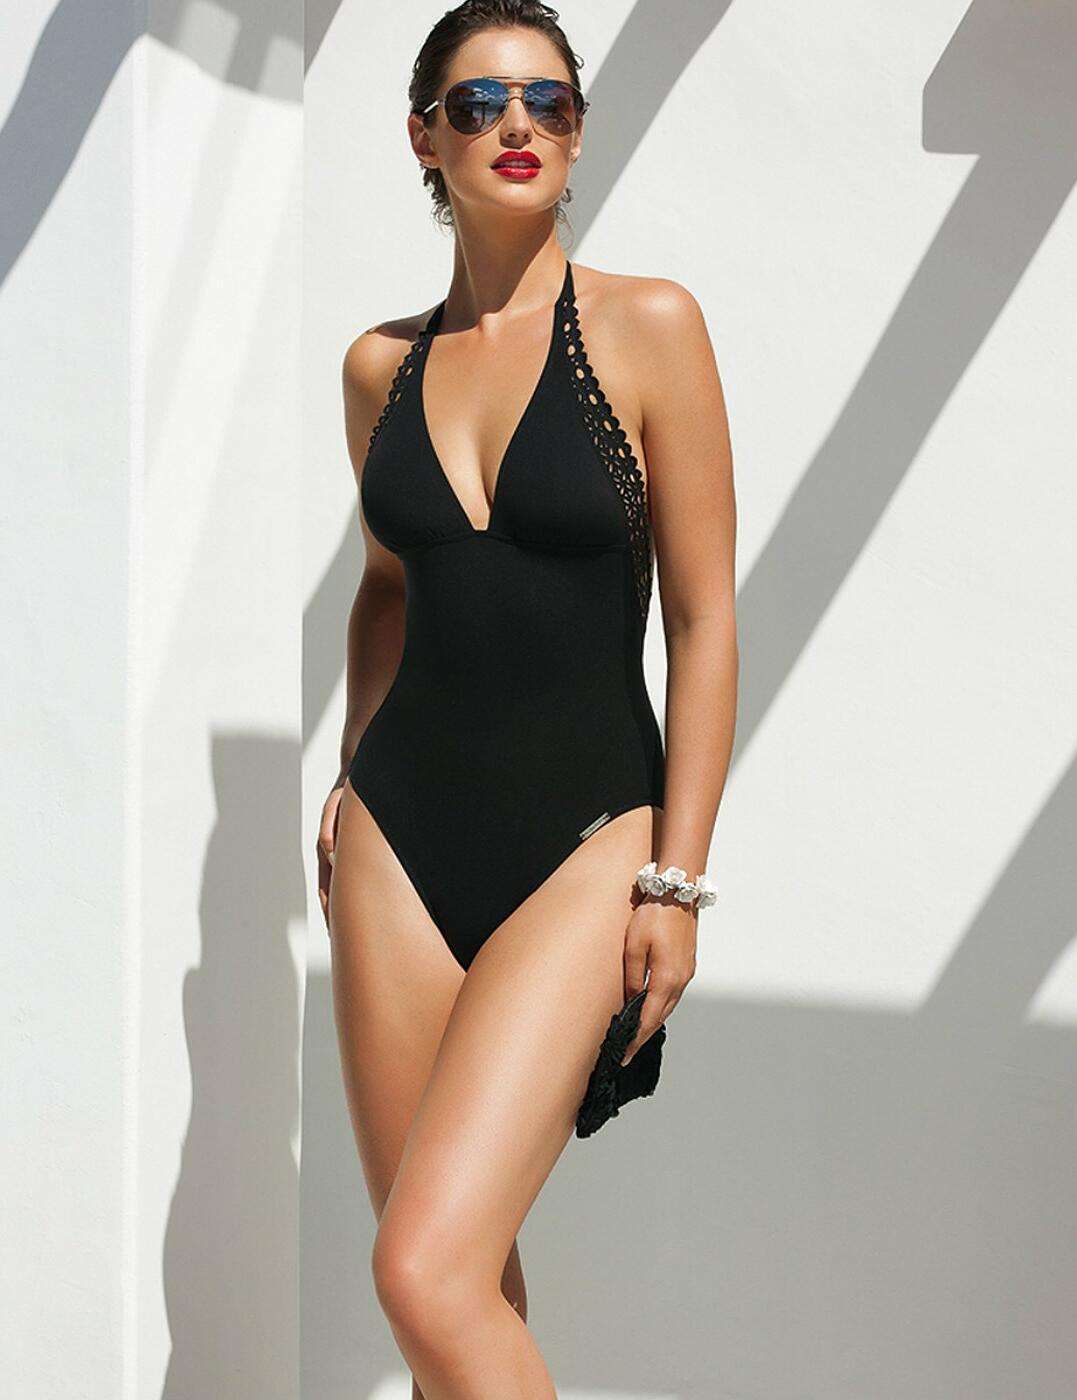 ABA9815 Lise Charmel Ajourage Couture Swimsuit - ABA9815 Noir